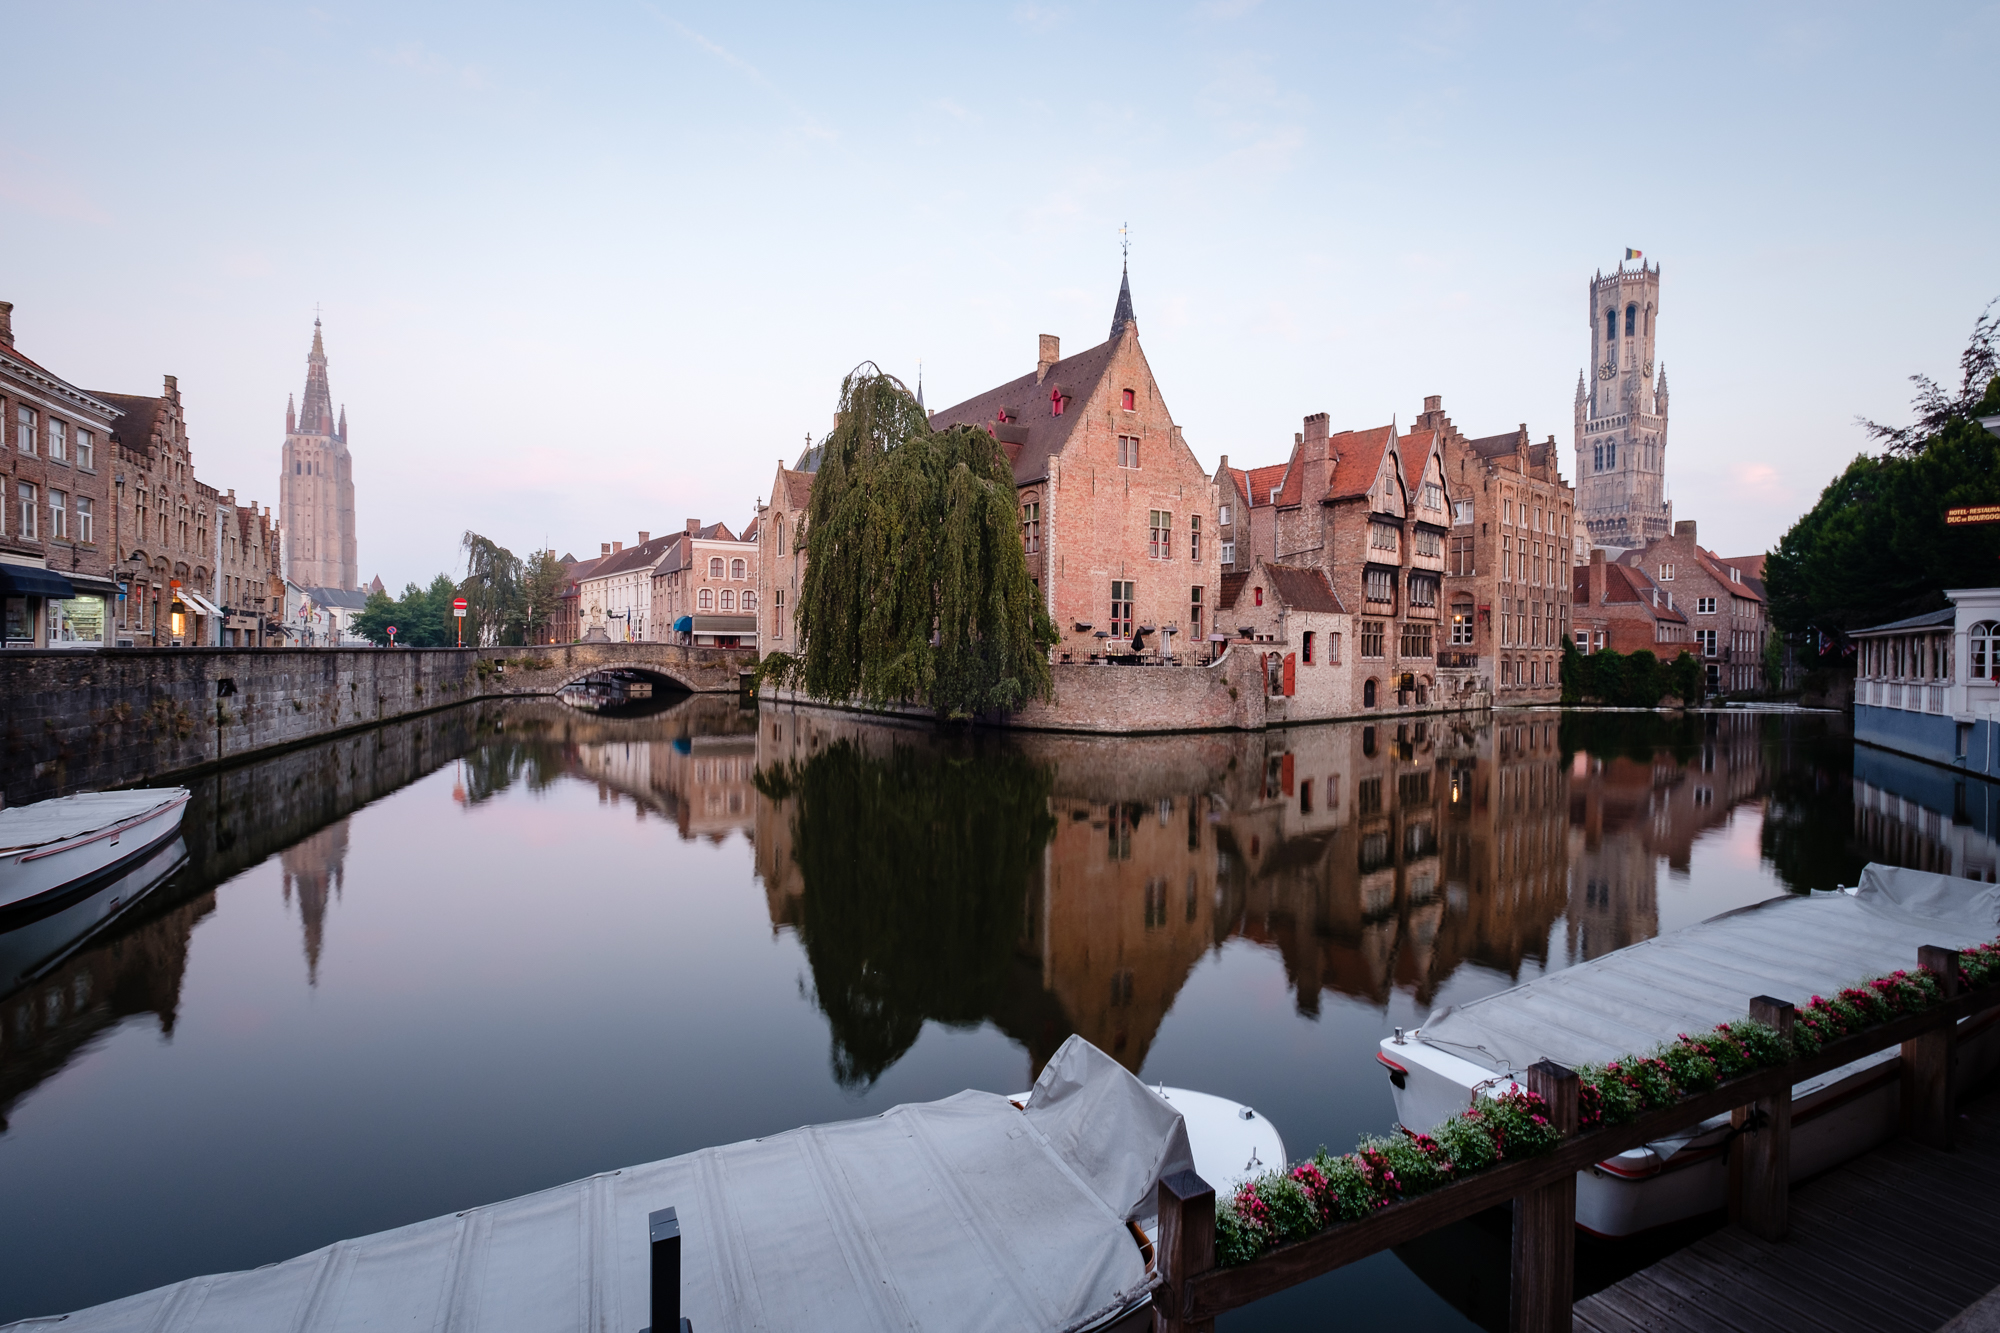 A photo of the Dijver Canal at the Relais Bourgondisch Cruyce in Bruges, Belgium taken by Trevor Sherwin